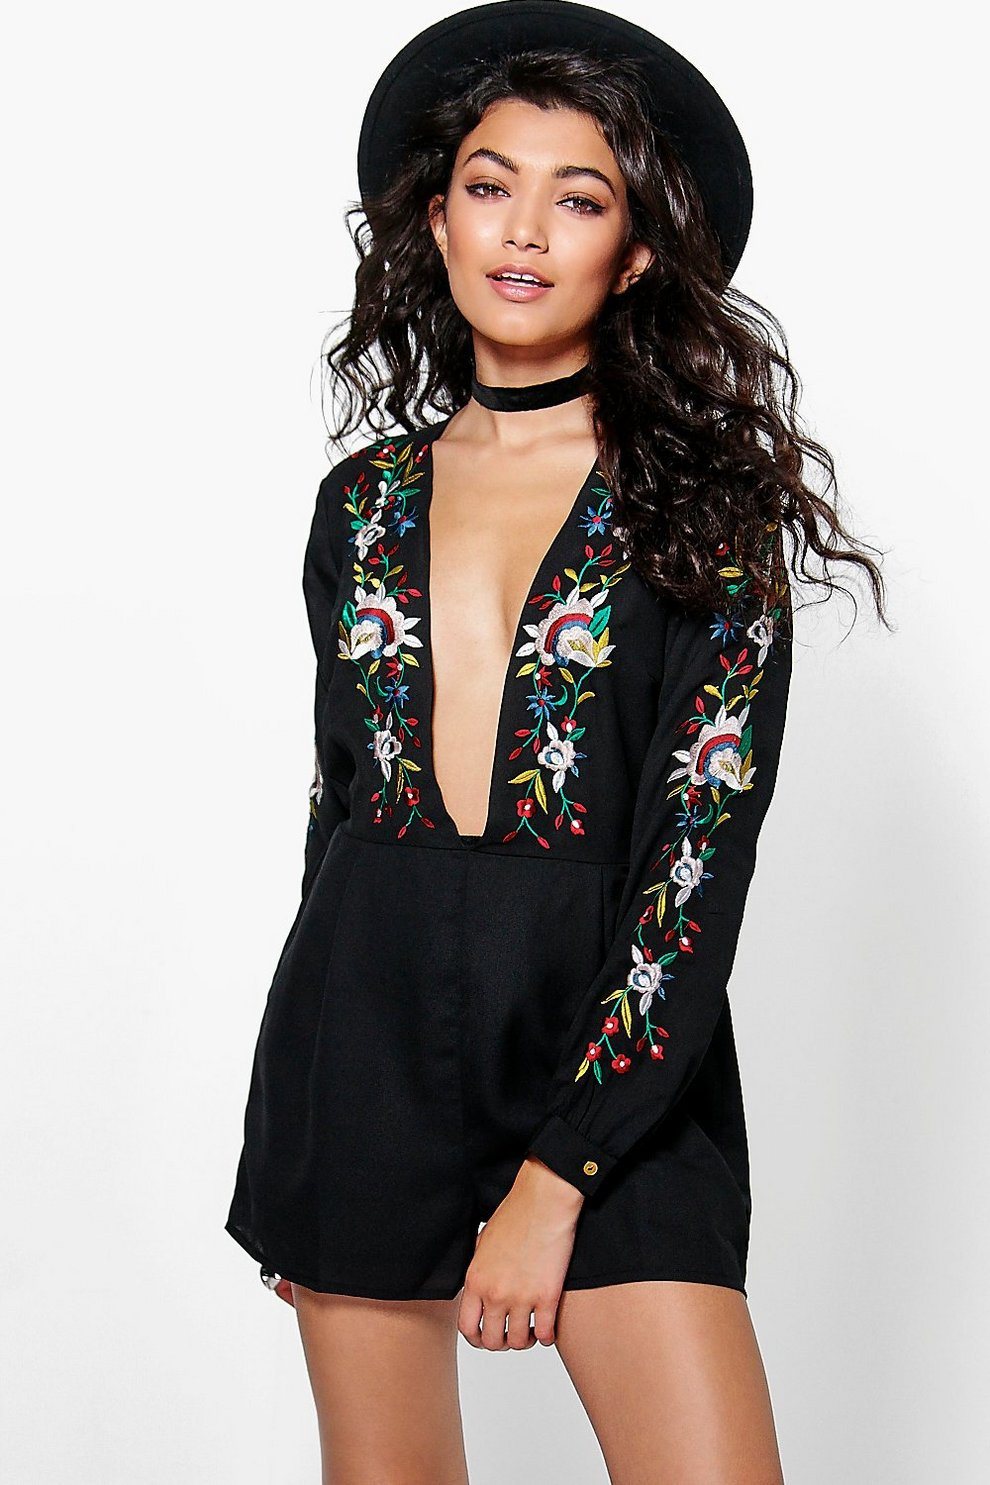 Boohoo Embroidered Playsuit Official Cheap Price Discount Factory Outlet Factory Outlet Sale Online B5VD8